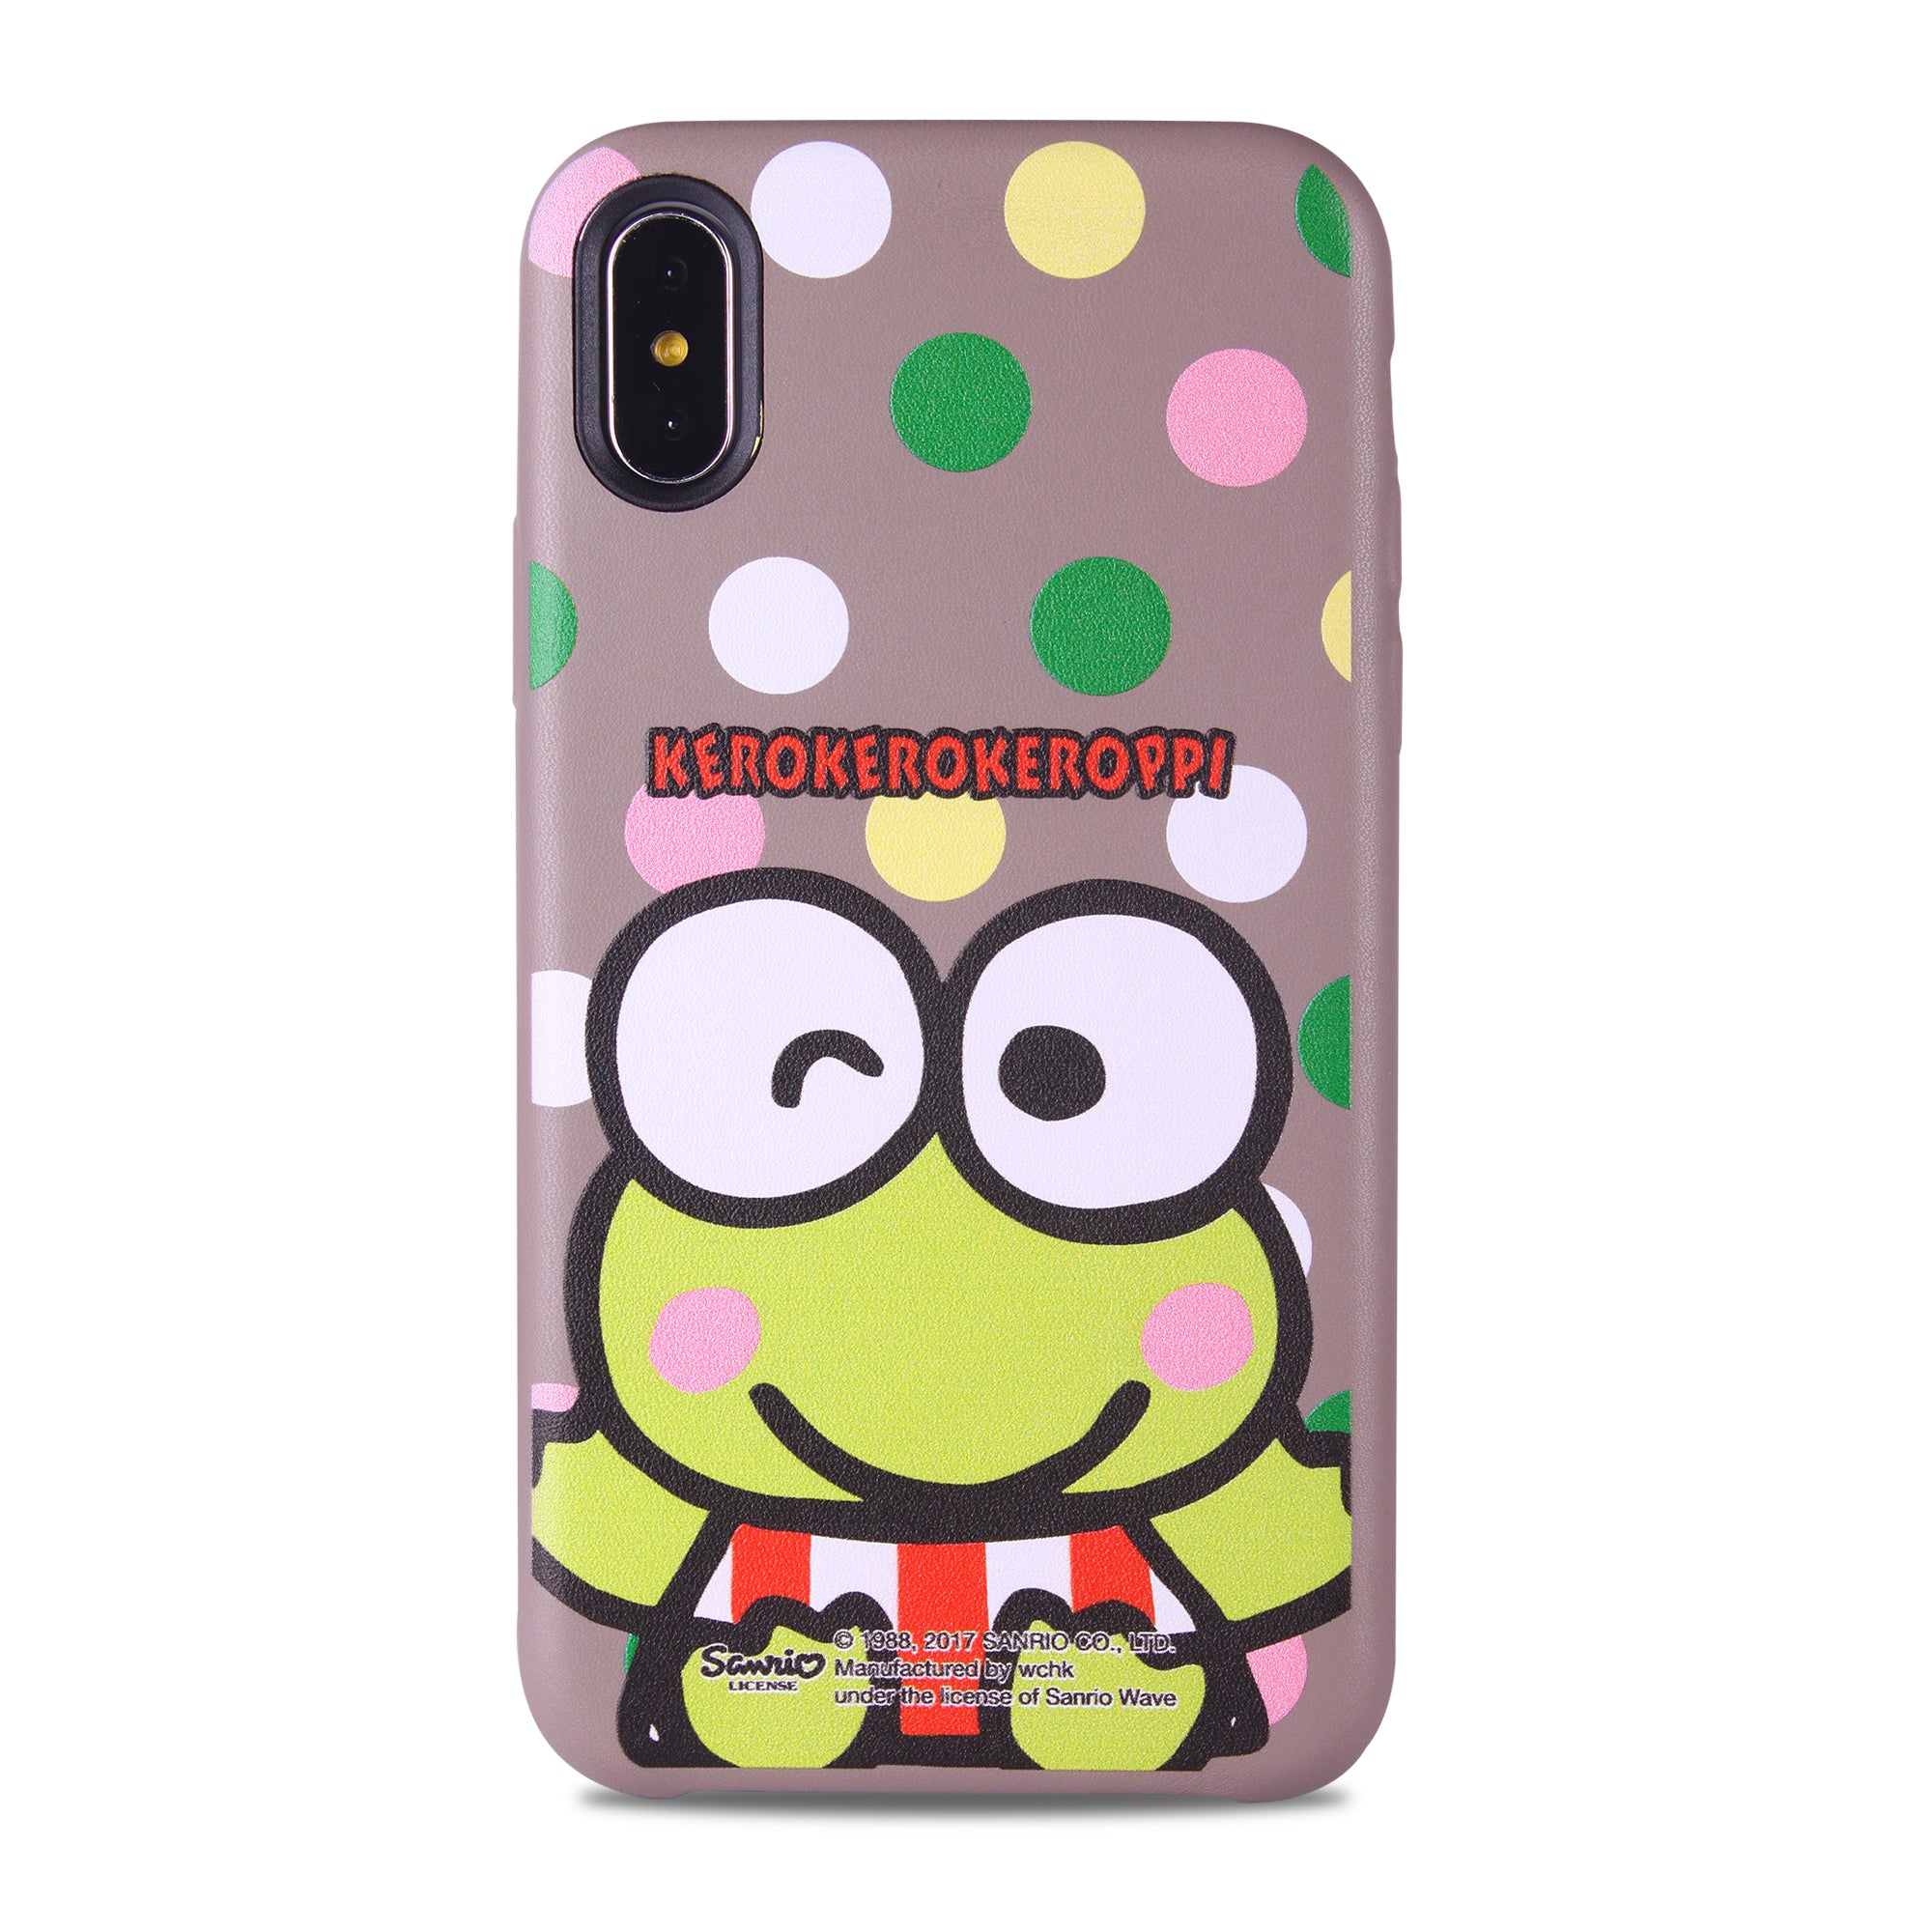 KeroKeroKeroppi Leather Snap Case (KR81LH)